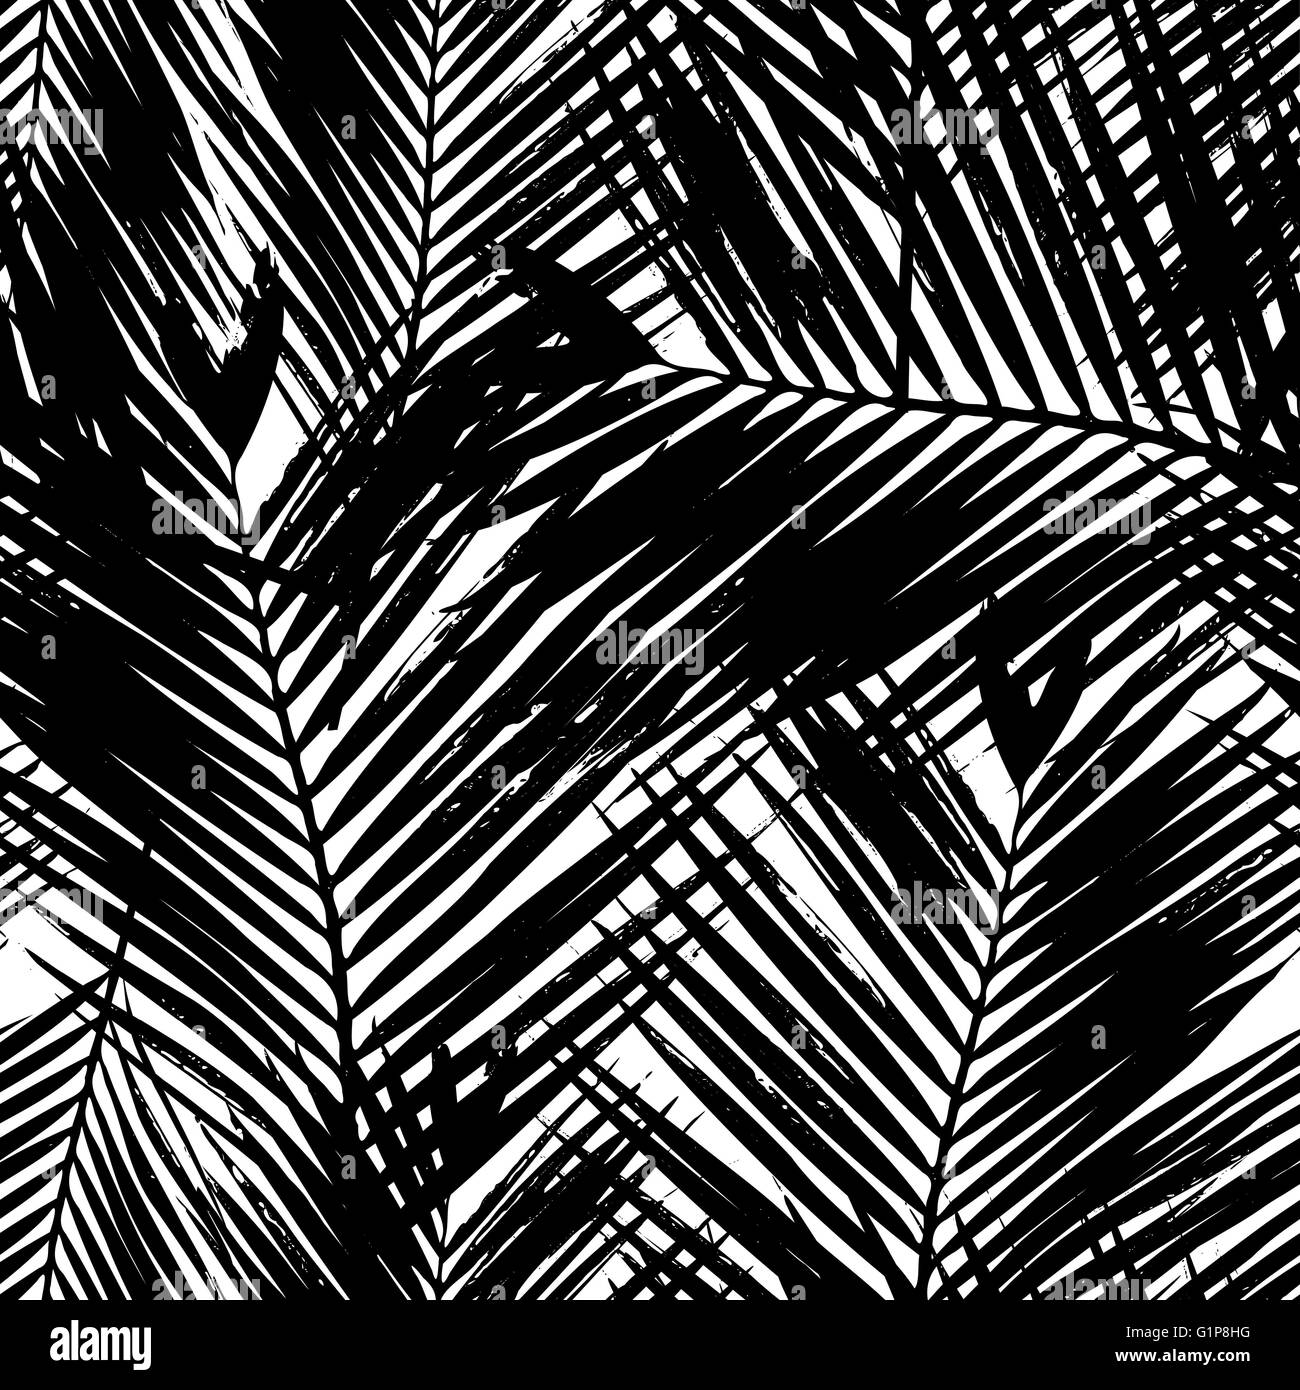 Seamless Repeating Pattern With Silhouettes Of Palm Tree Leaves In Black And White